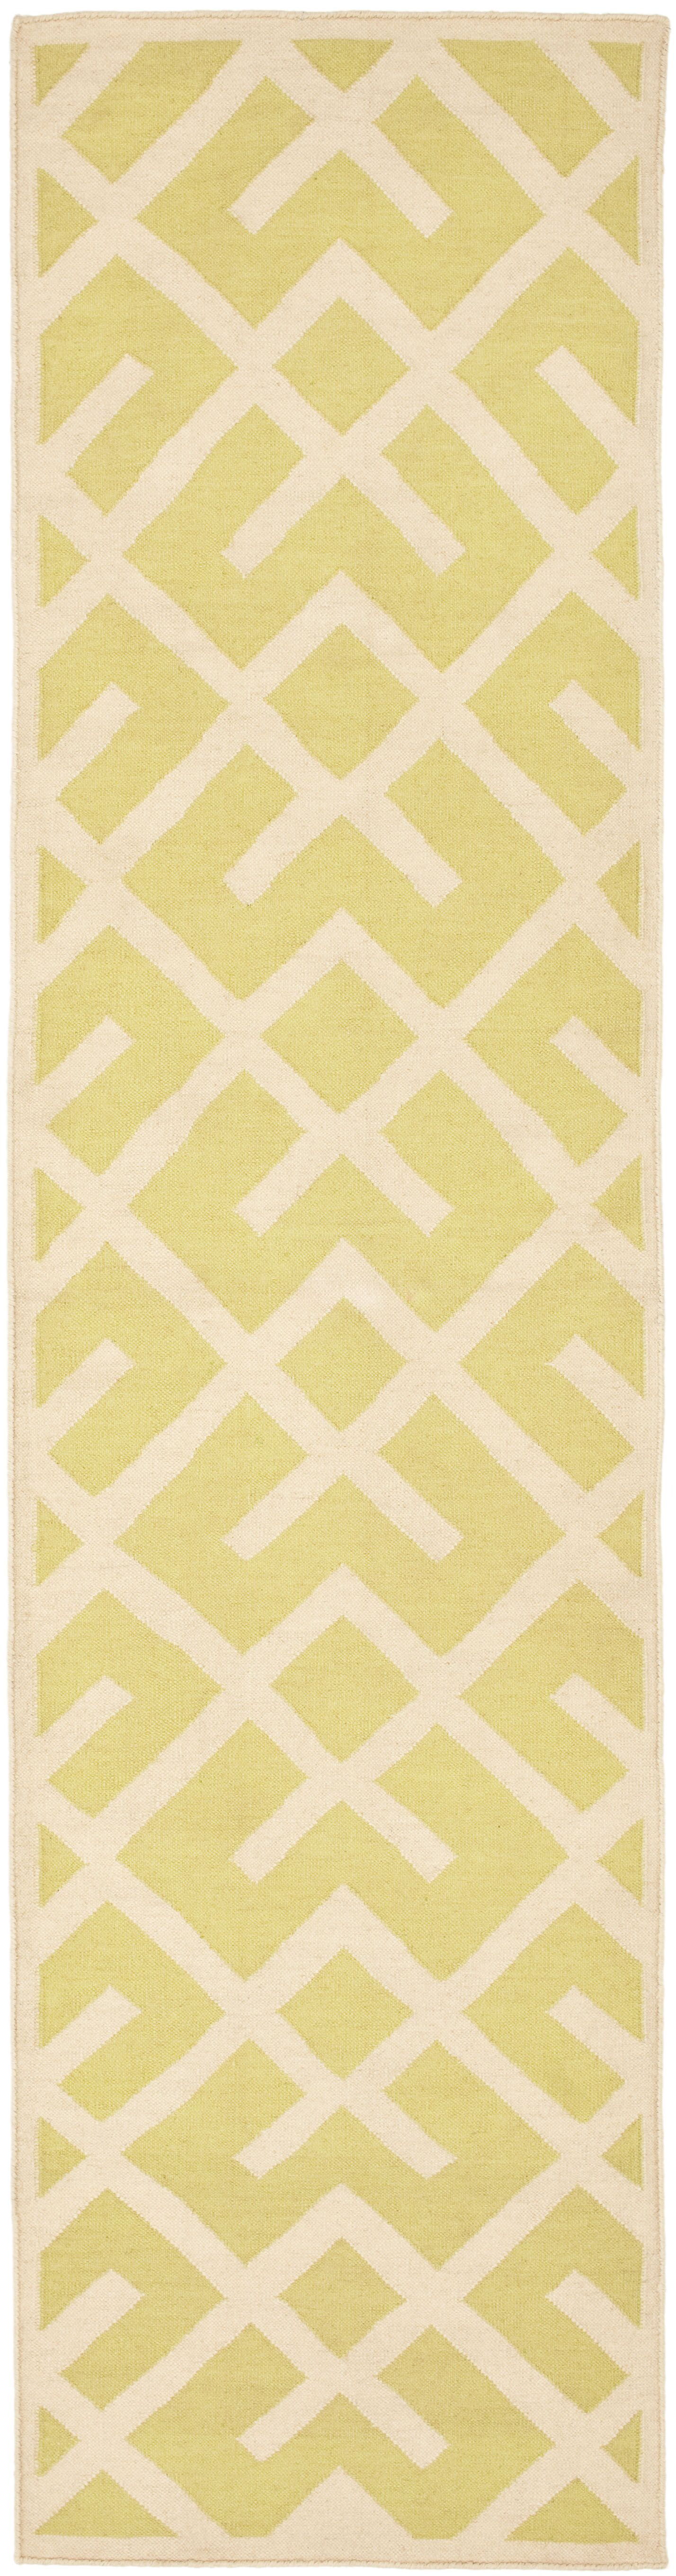 Crawford Hand-Woven Light Green/Ivory Area Rug Rug Size: Runner 2'6